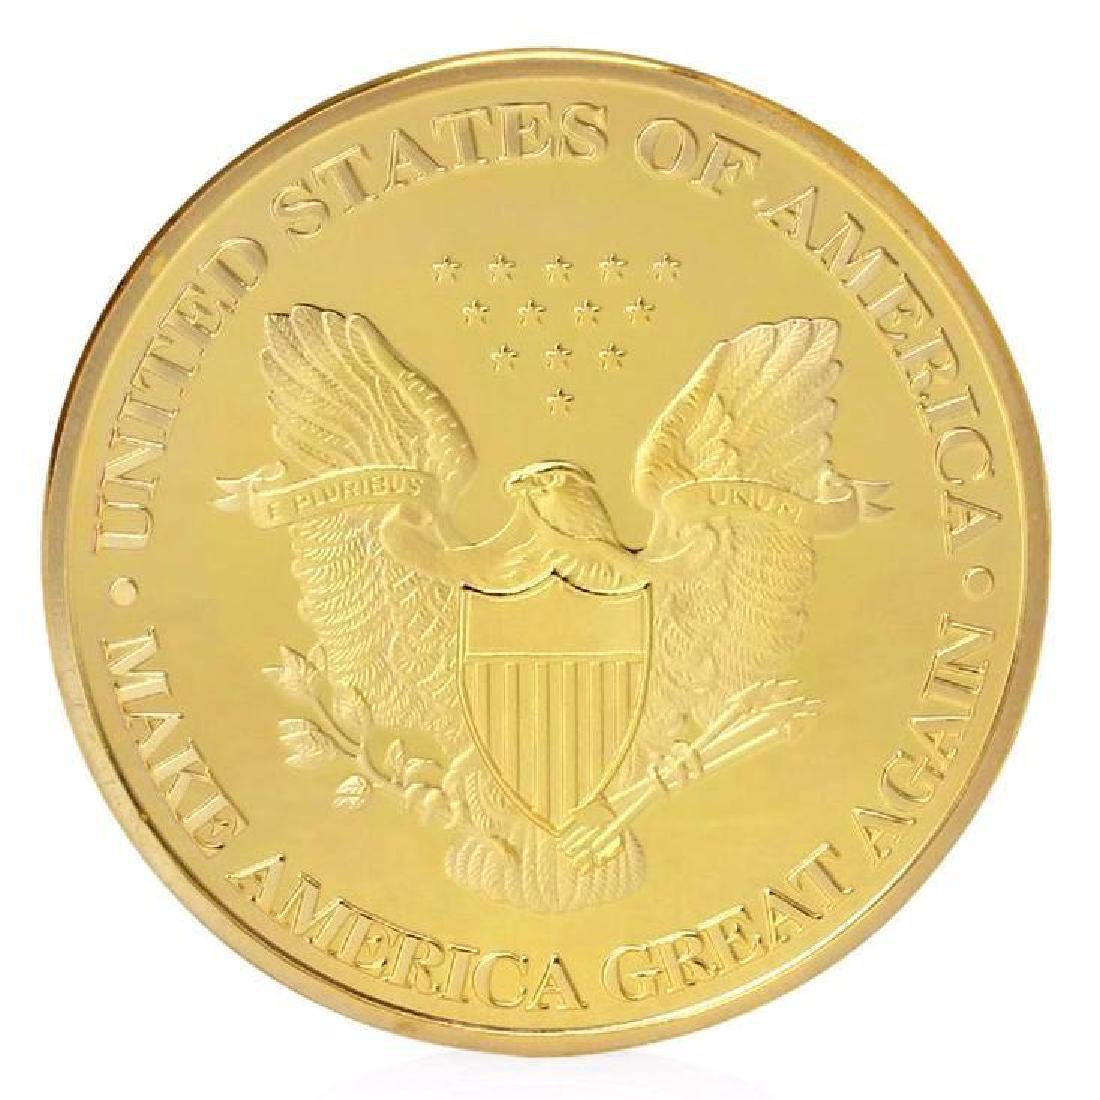 Donald Trump President Colored Gold Clad Coin - 2